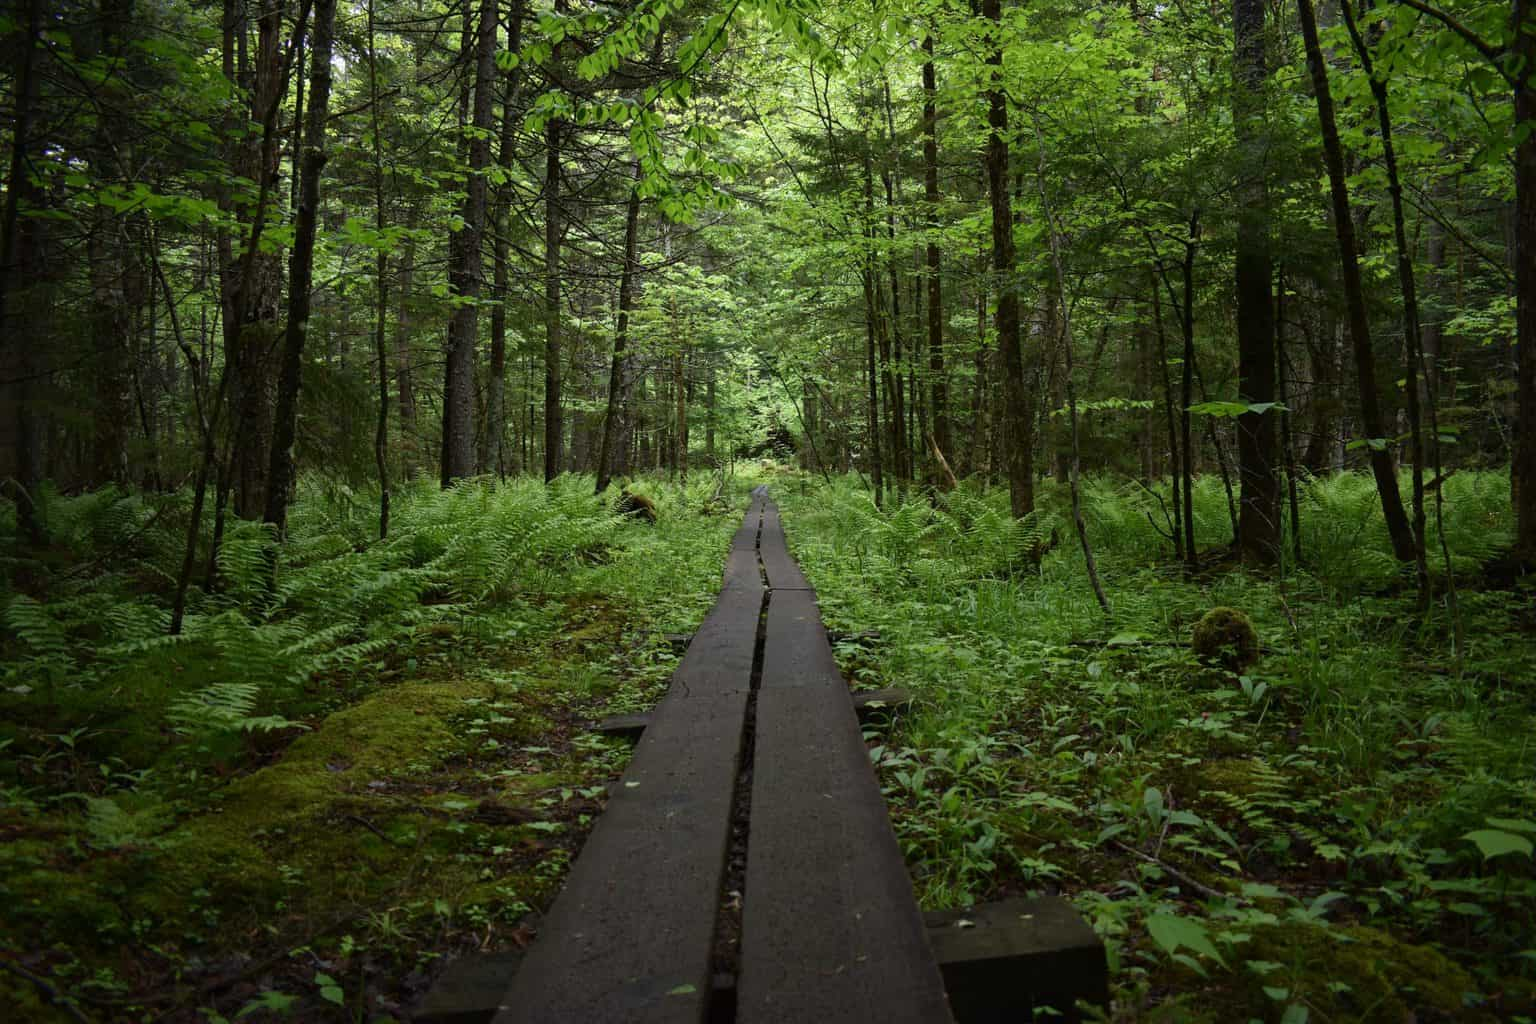 View of one of the best hiking trails in upstate New York.